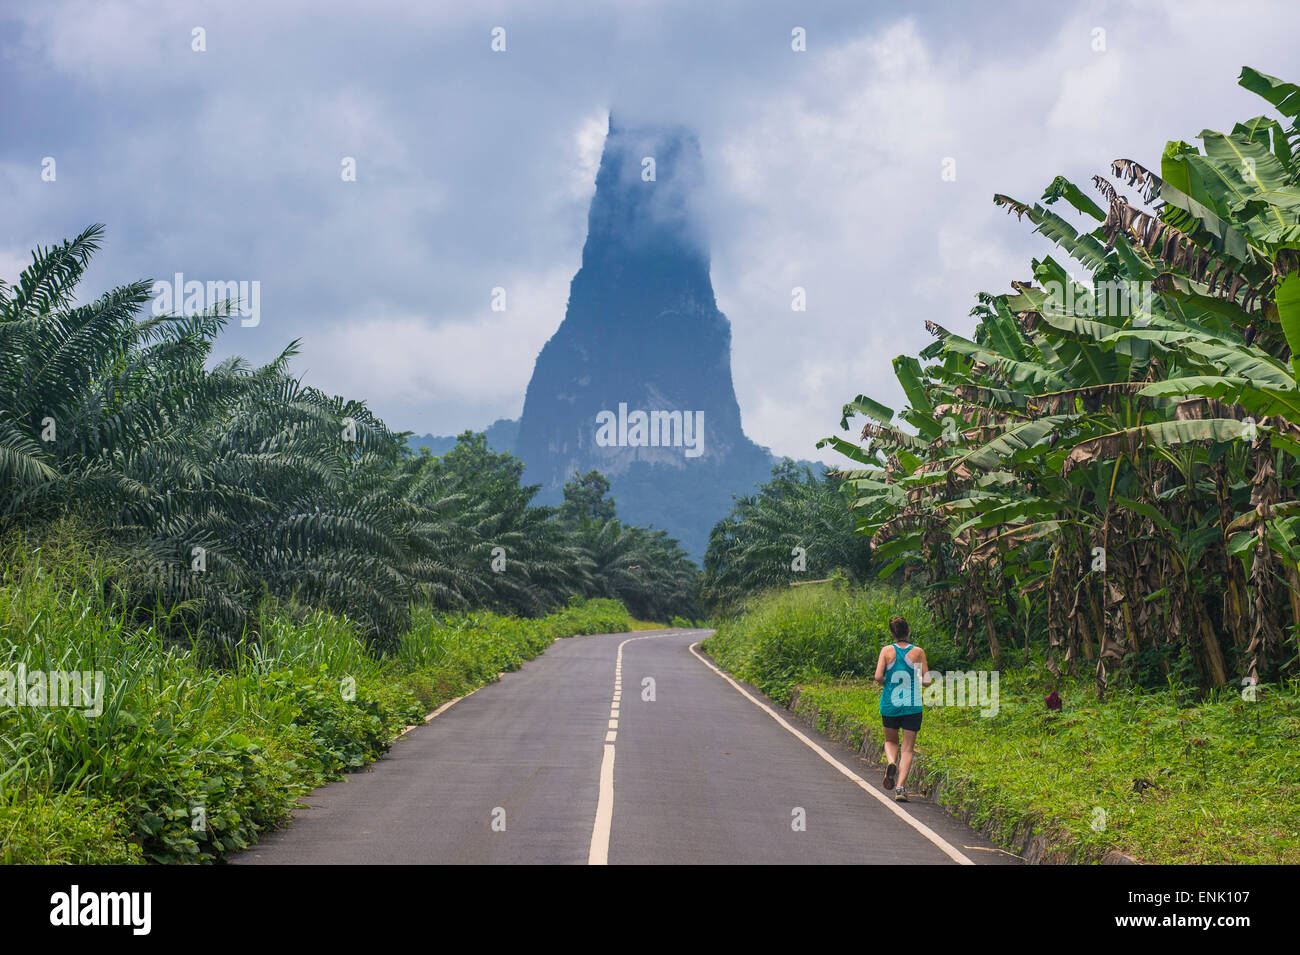 Runner on a road leading to the unusal monolith, Pico Cao Grande, east coast of Sao Tome, Sao Tome and Principe, - Stock Image